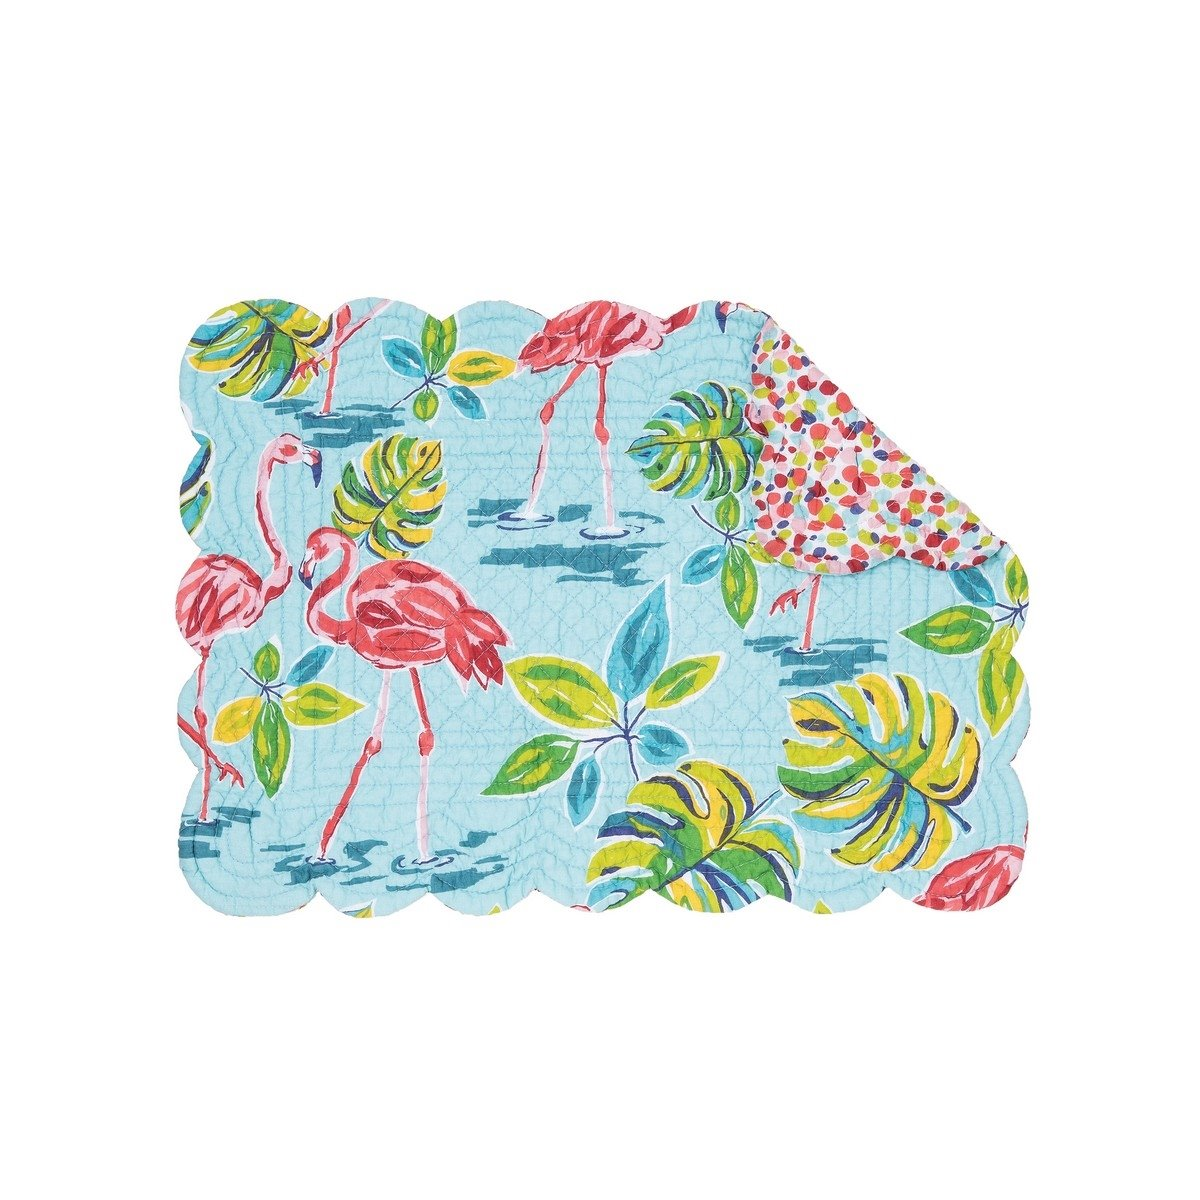 Flamingo Garden Rectangular Quilted Placemat